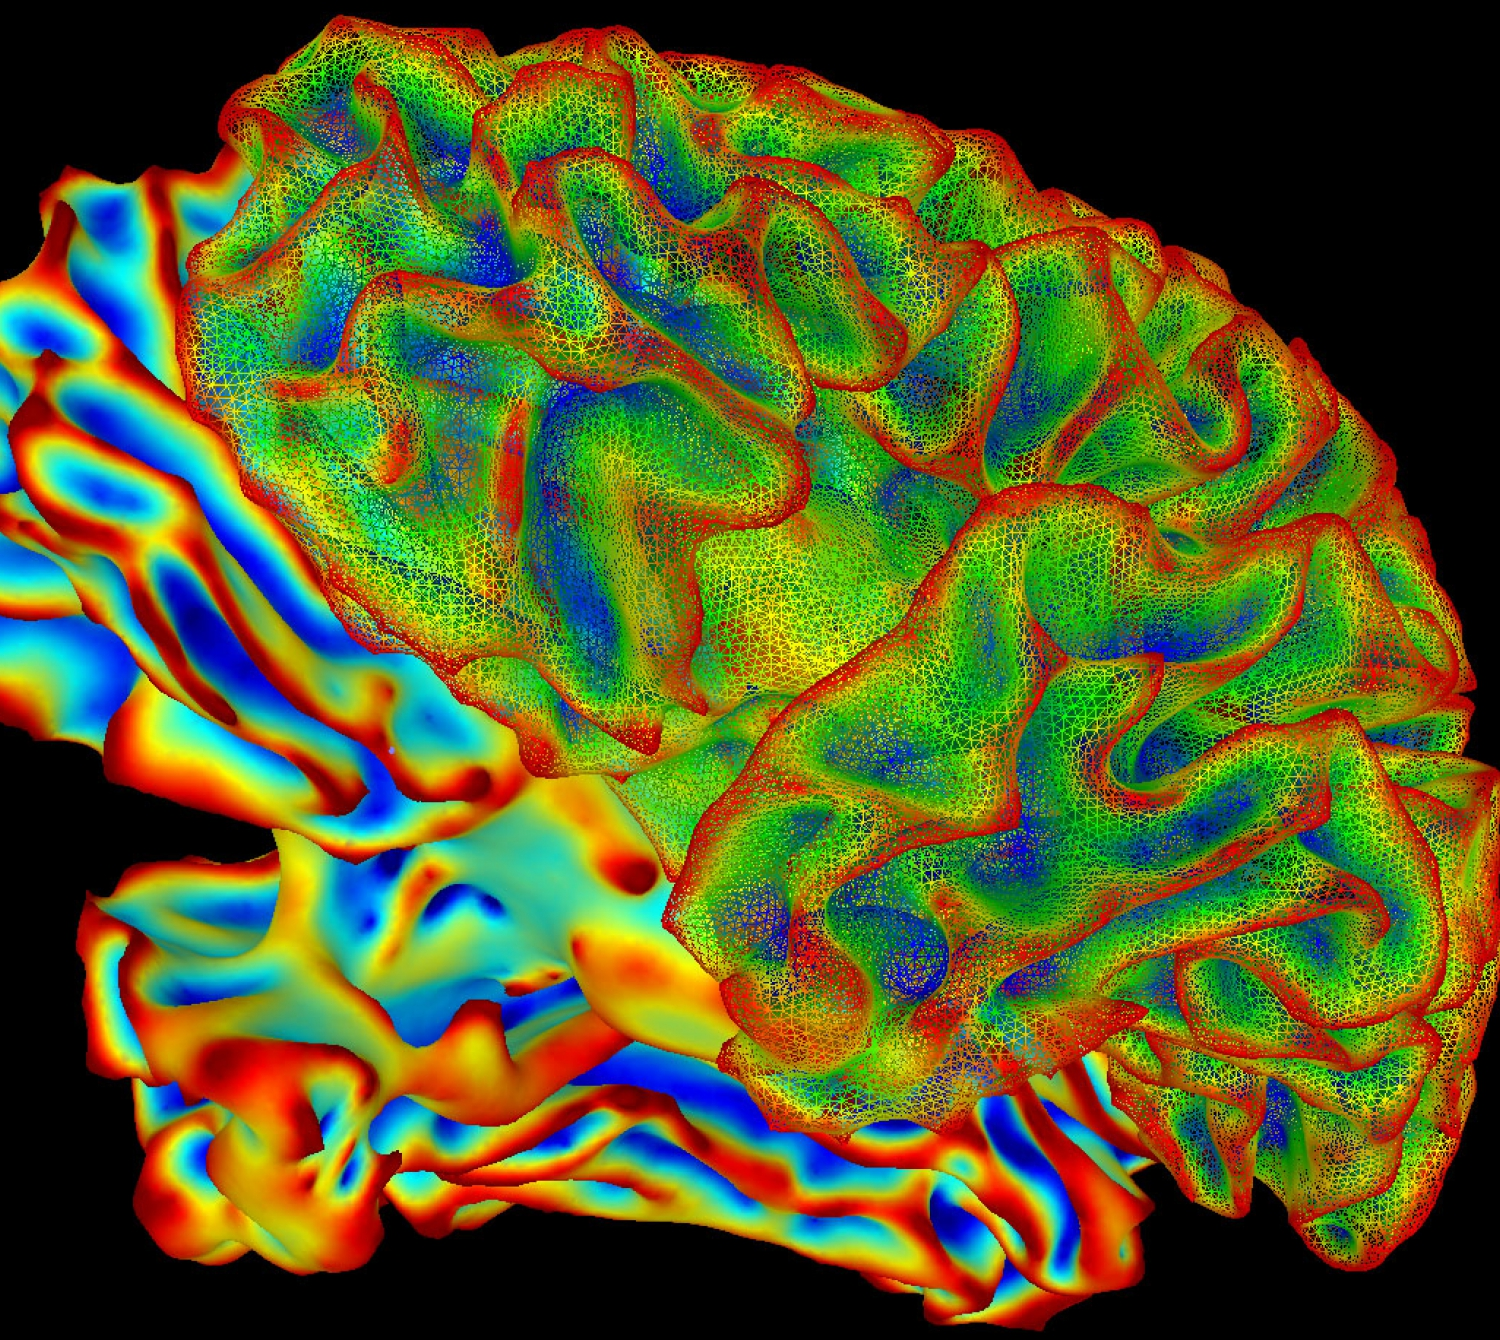 An image of the brain.